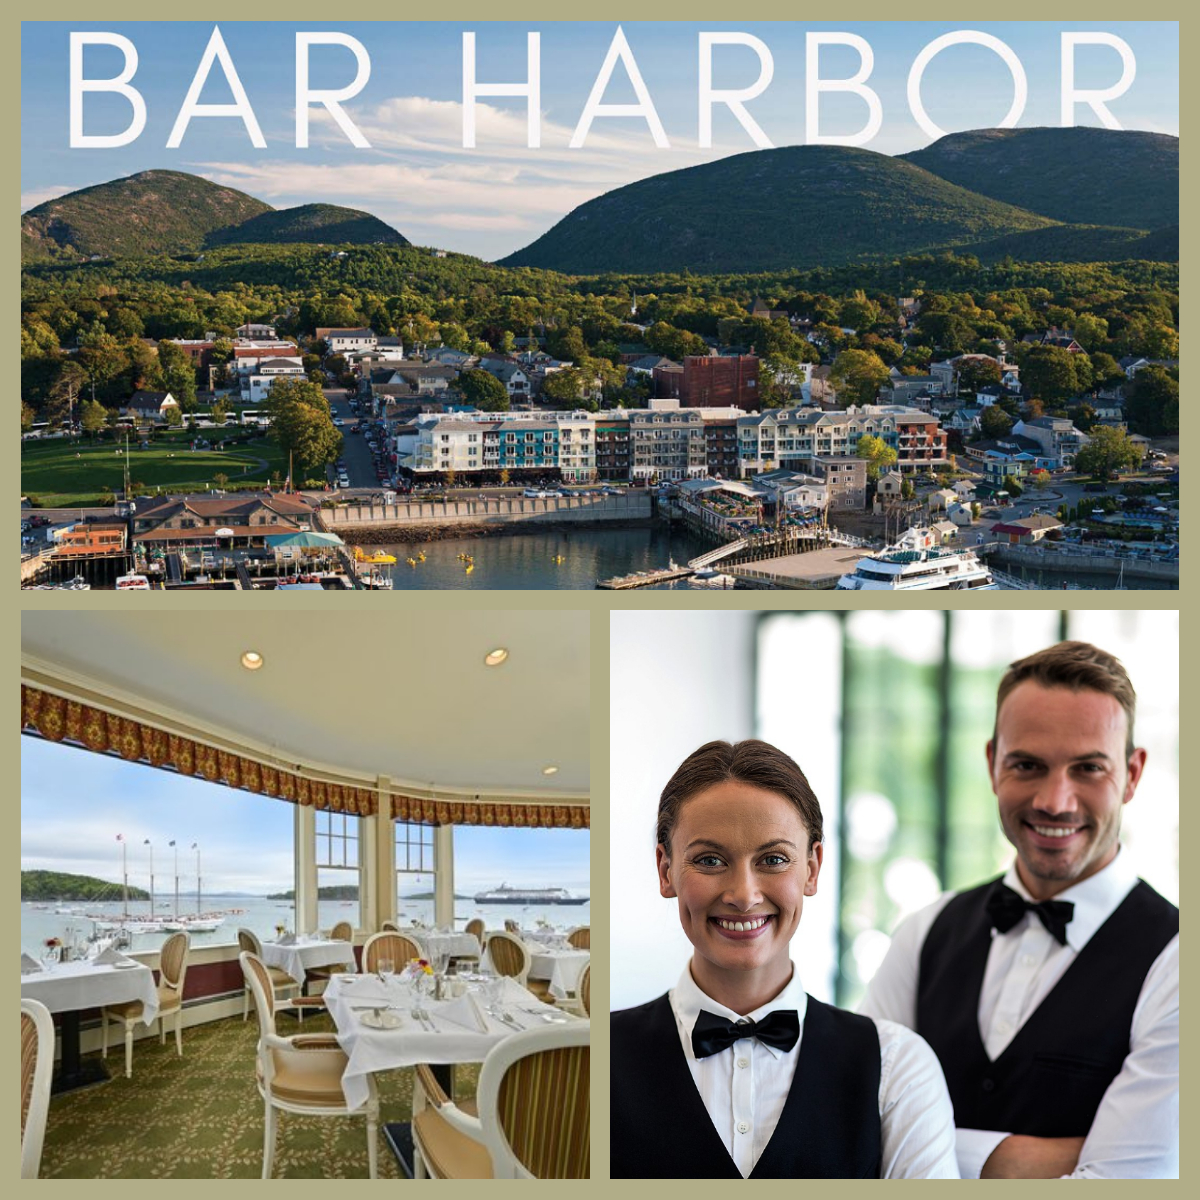 Hospitality Food and Beverage - Bar Harbor